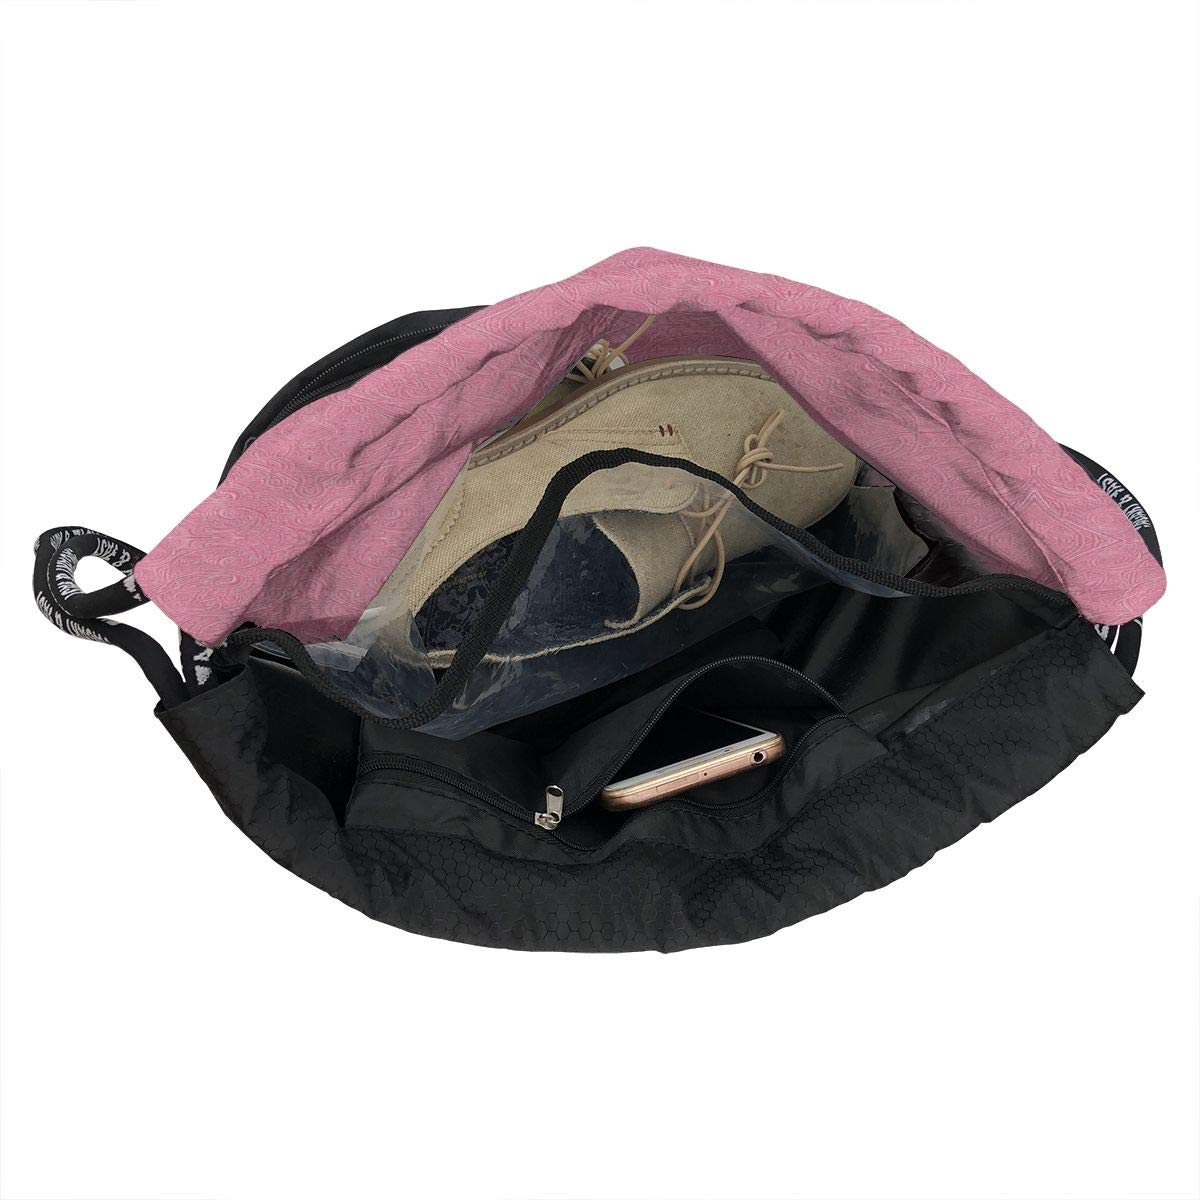 Staring Ceiling Drawstring Backpack Sports Athletic Gym Cinch Sack String Storage Bags for Hiking Travel Beach